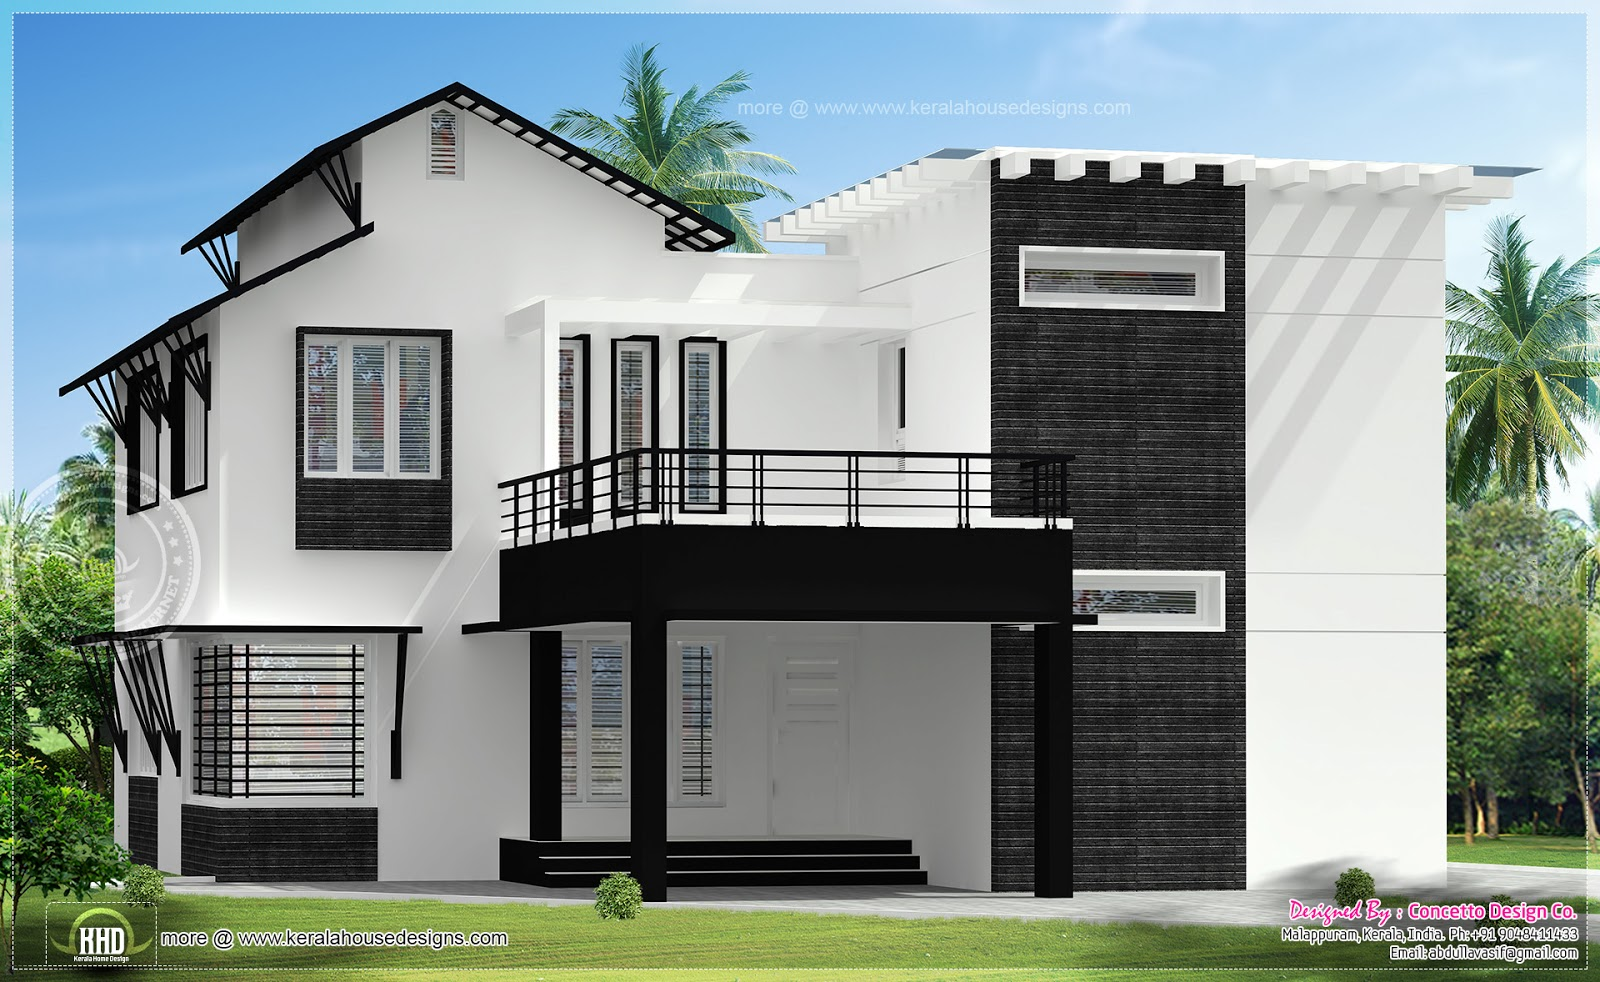 5 different house exteriors by concetto design kerala for Www house design plan com